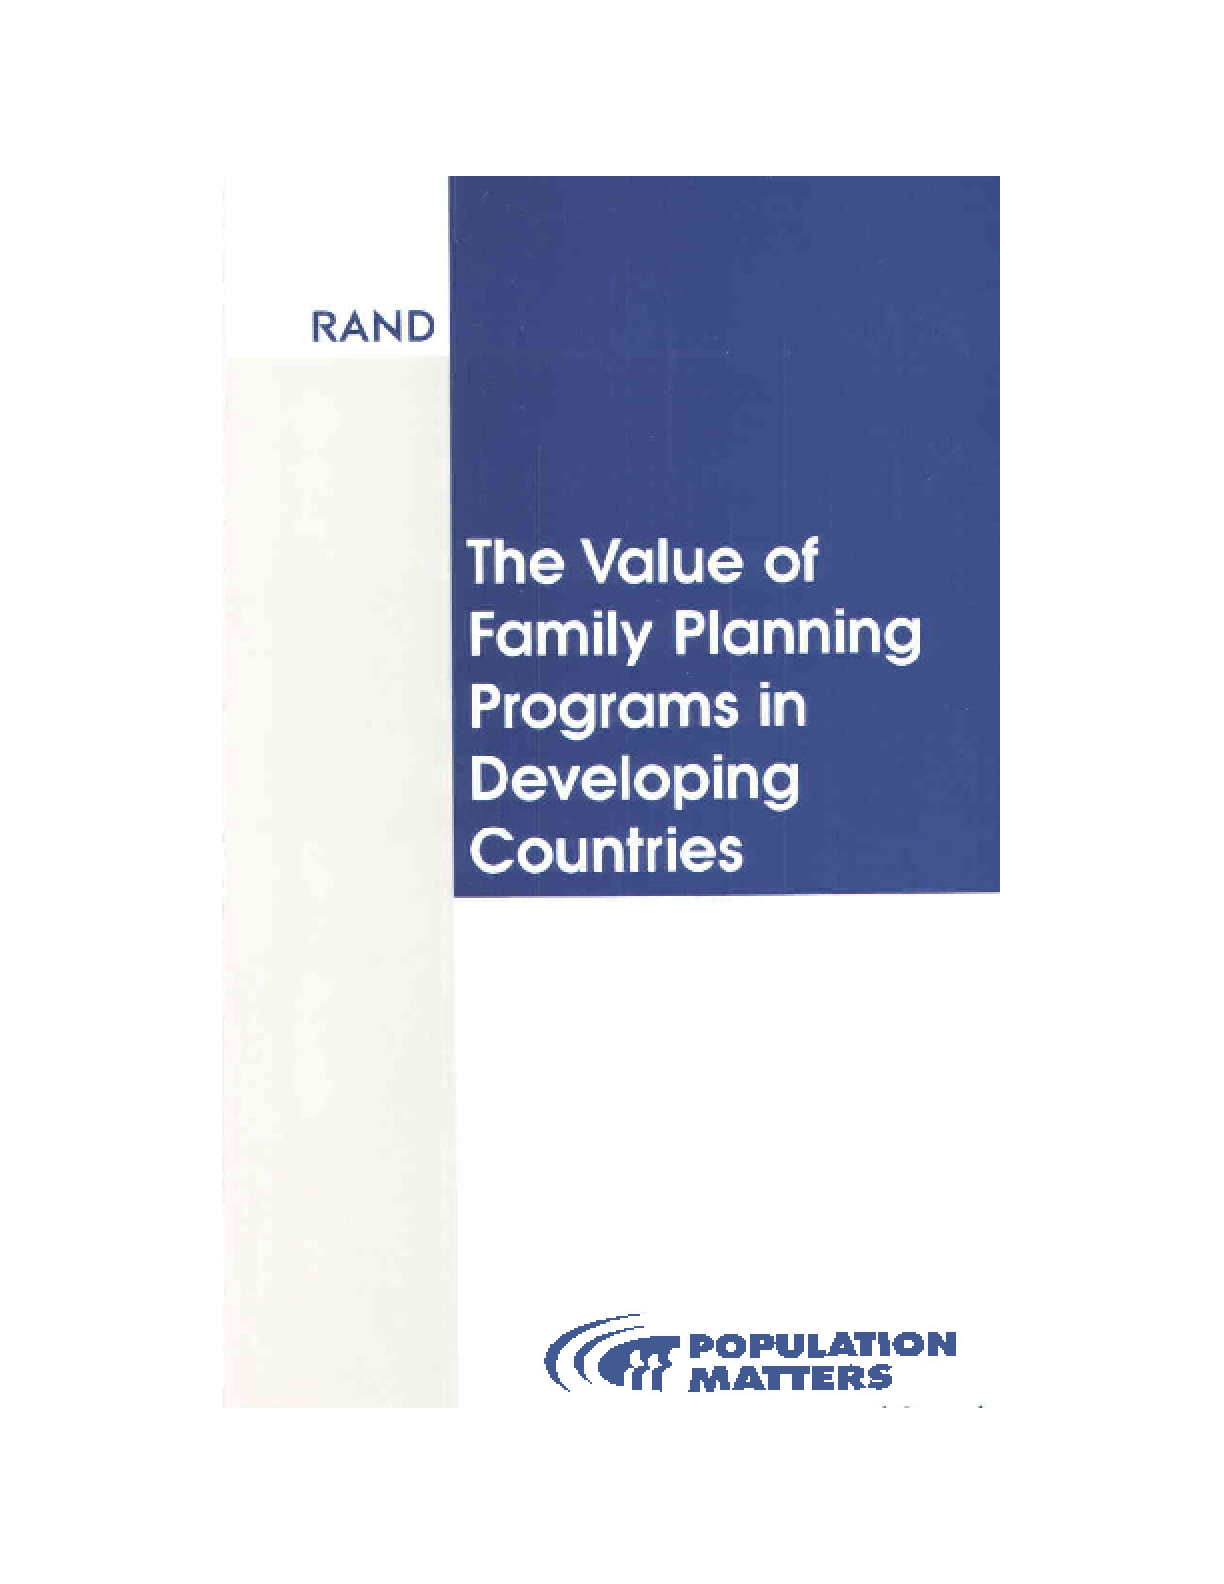 The Value of Family Planning Programs in Developing Countries